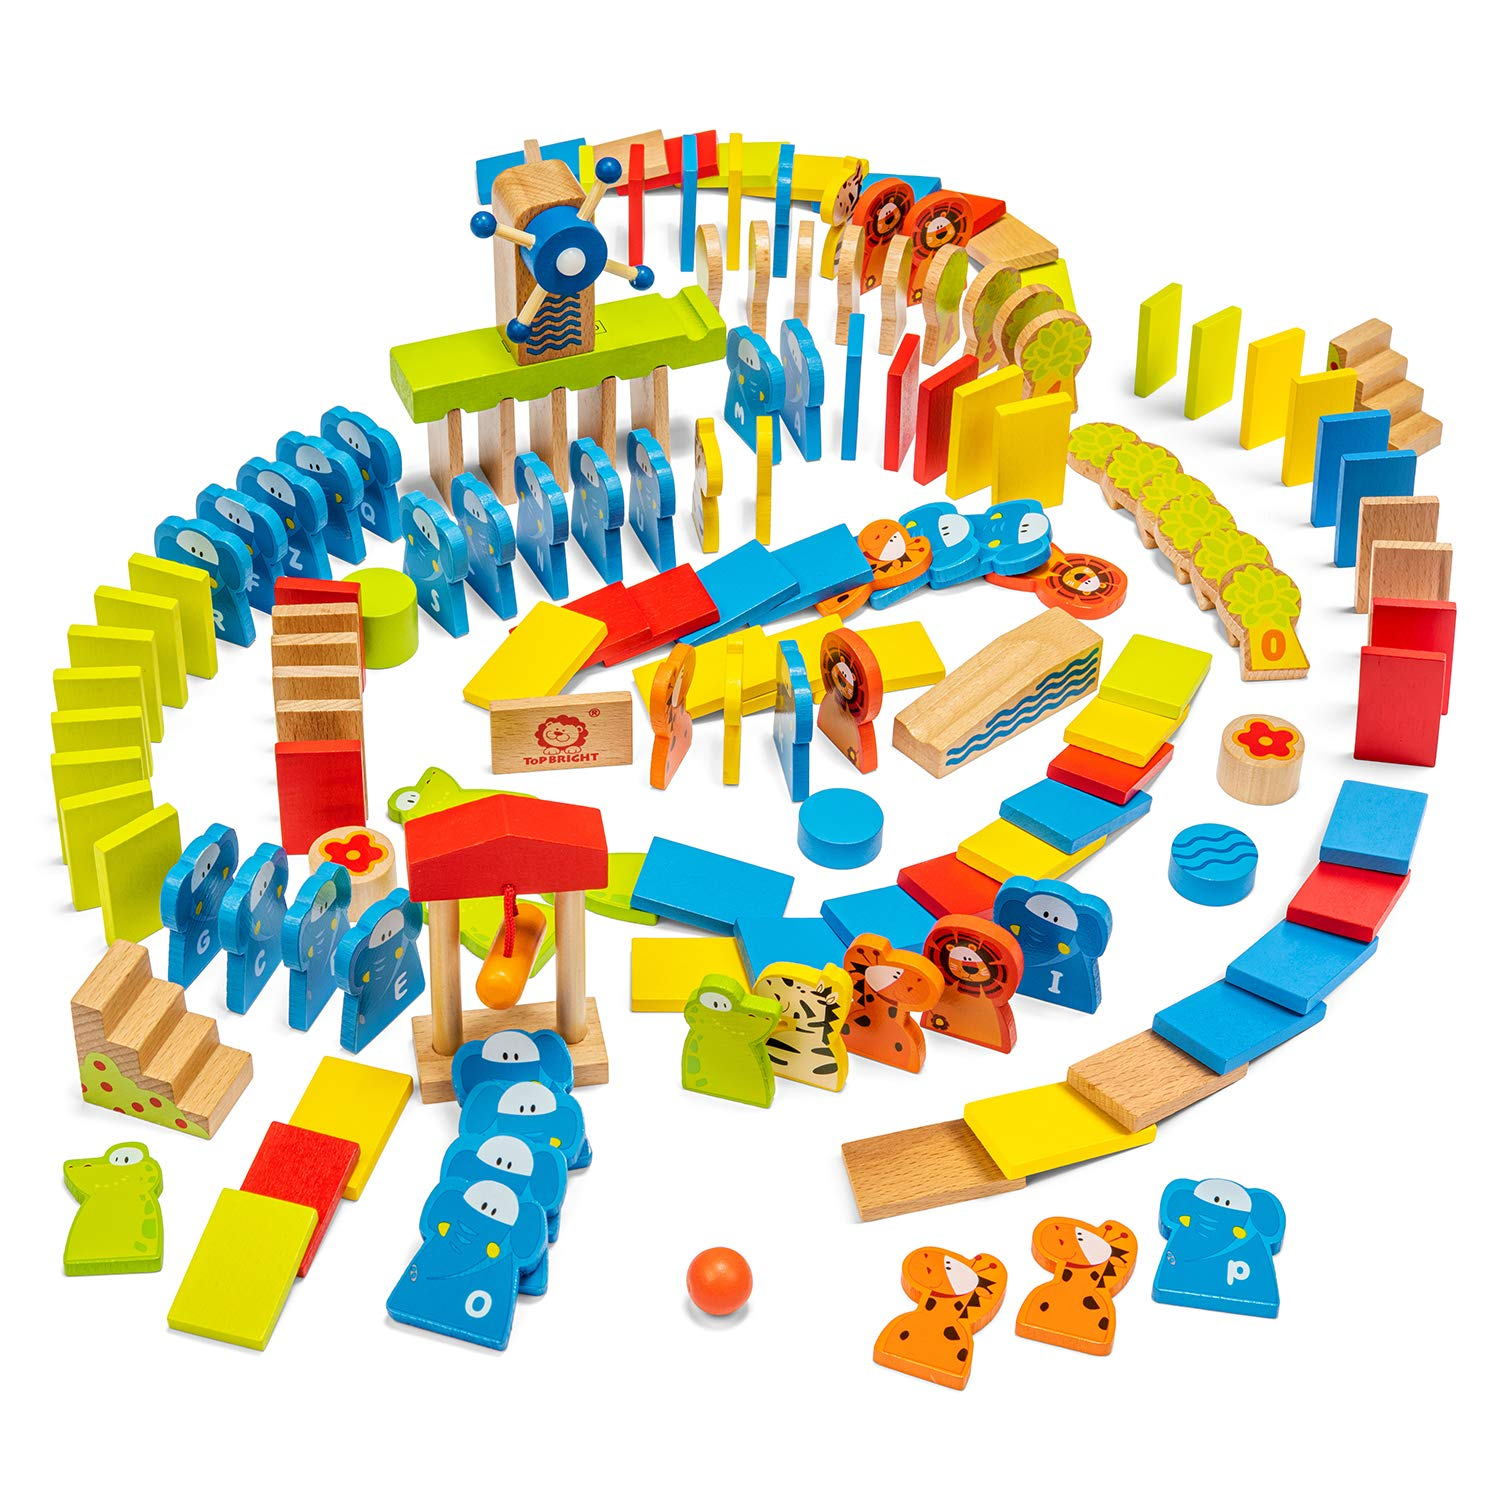 TOP BRIGHT Dominoes for Kids, Gifts for Toddlers Girl Boy Age 3, Learning Toy with 150 Wooden Building Blocks and Storage Box